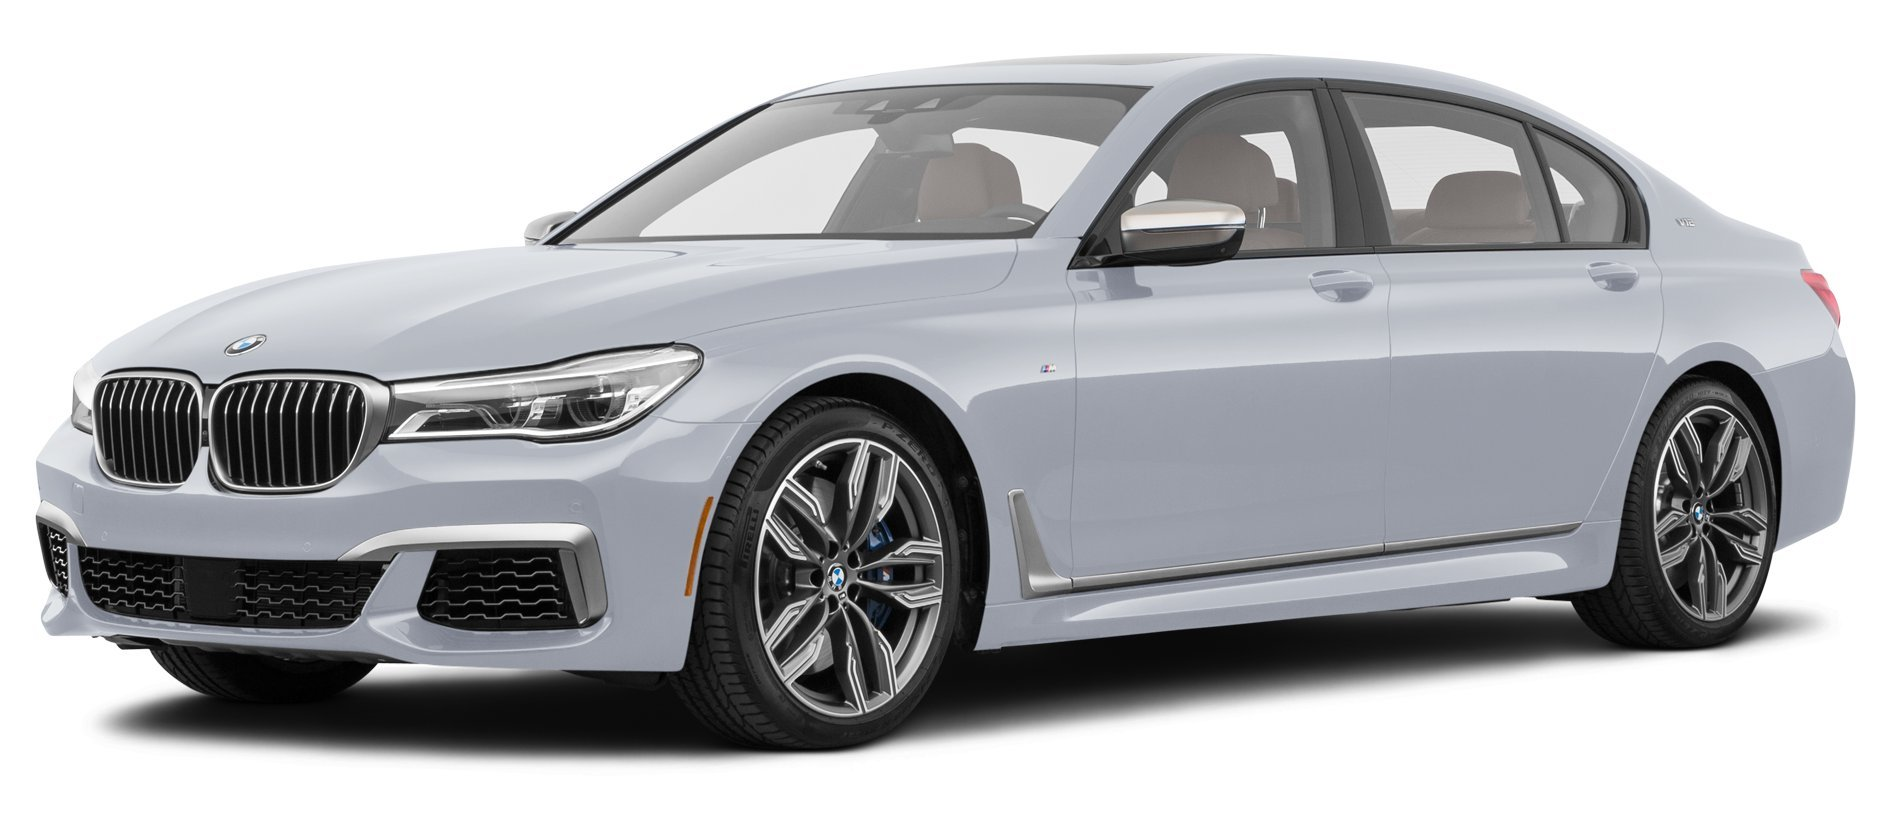 2017 Bmw M760i Xdrive Reviews Images And Specs Vehicles Auto Repair 735i 1986 Electrical Alpina B7 Sedan